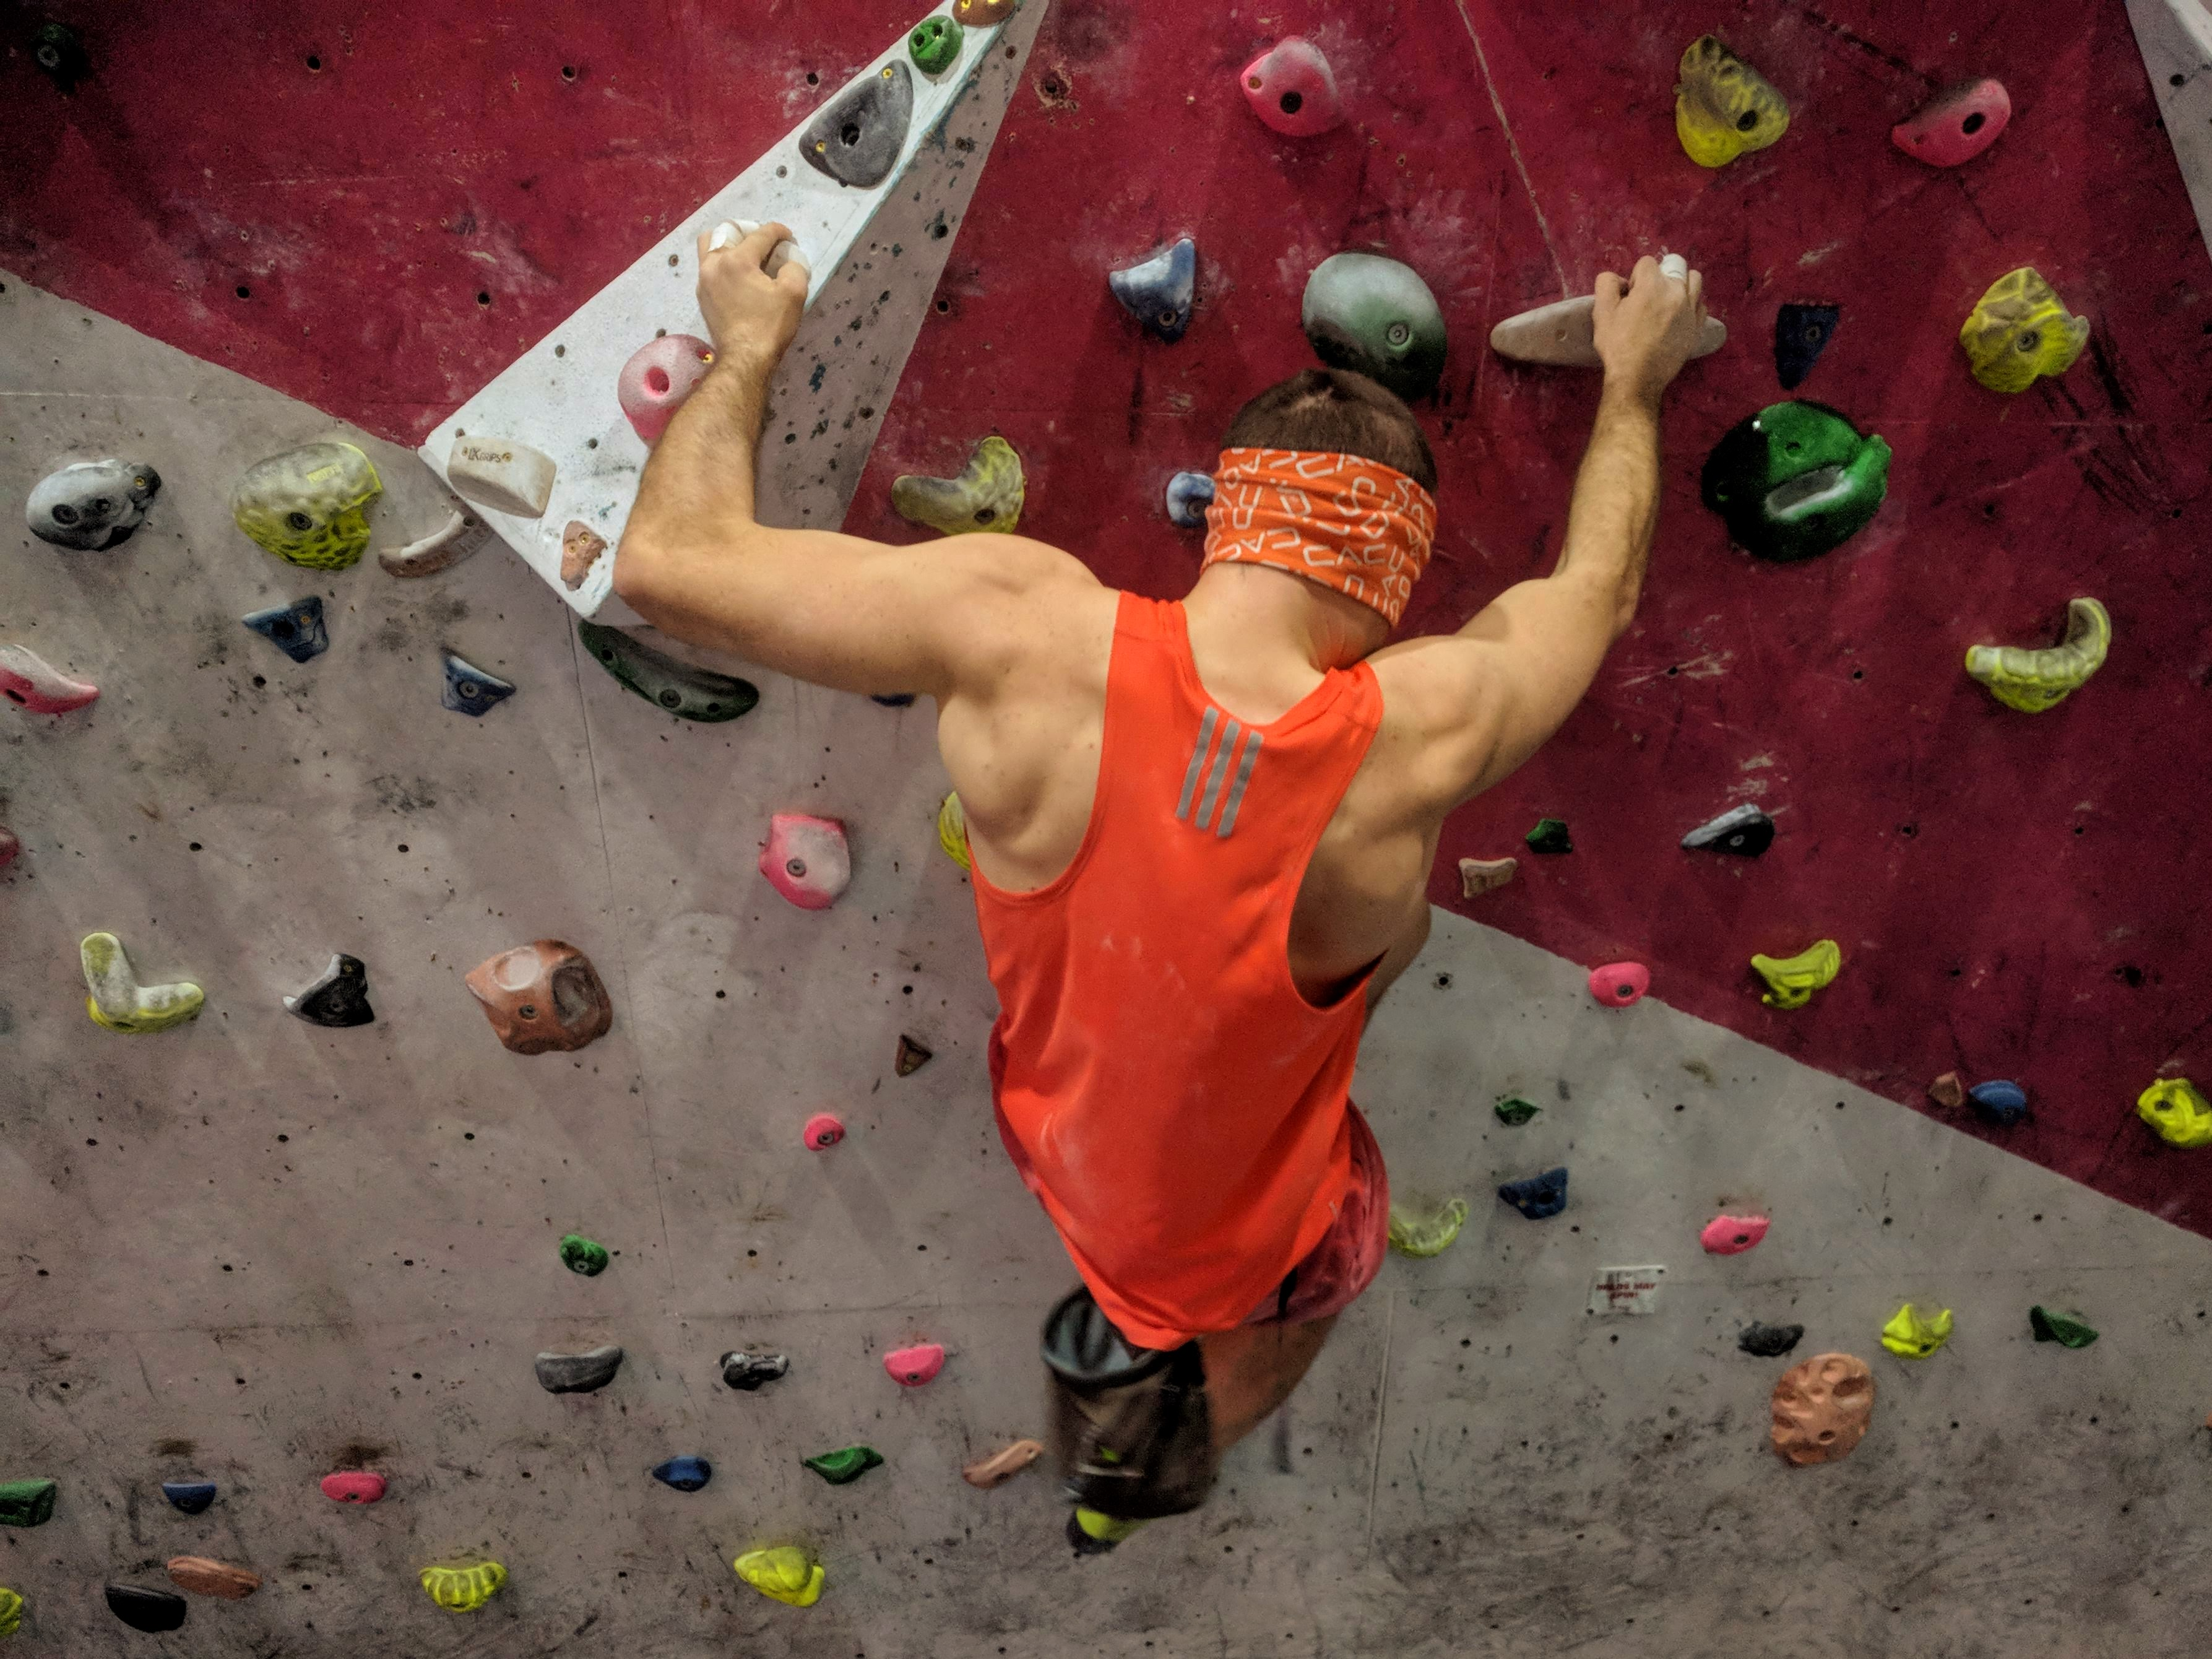 A picture of Jesse wearing an orange vest and an orange blindfold. He is climbing on the wooden holds on the steep circuit board at his local climbing wall.